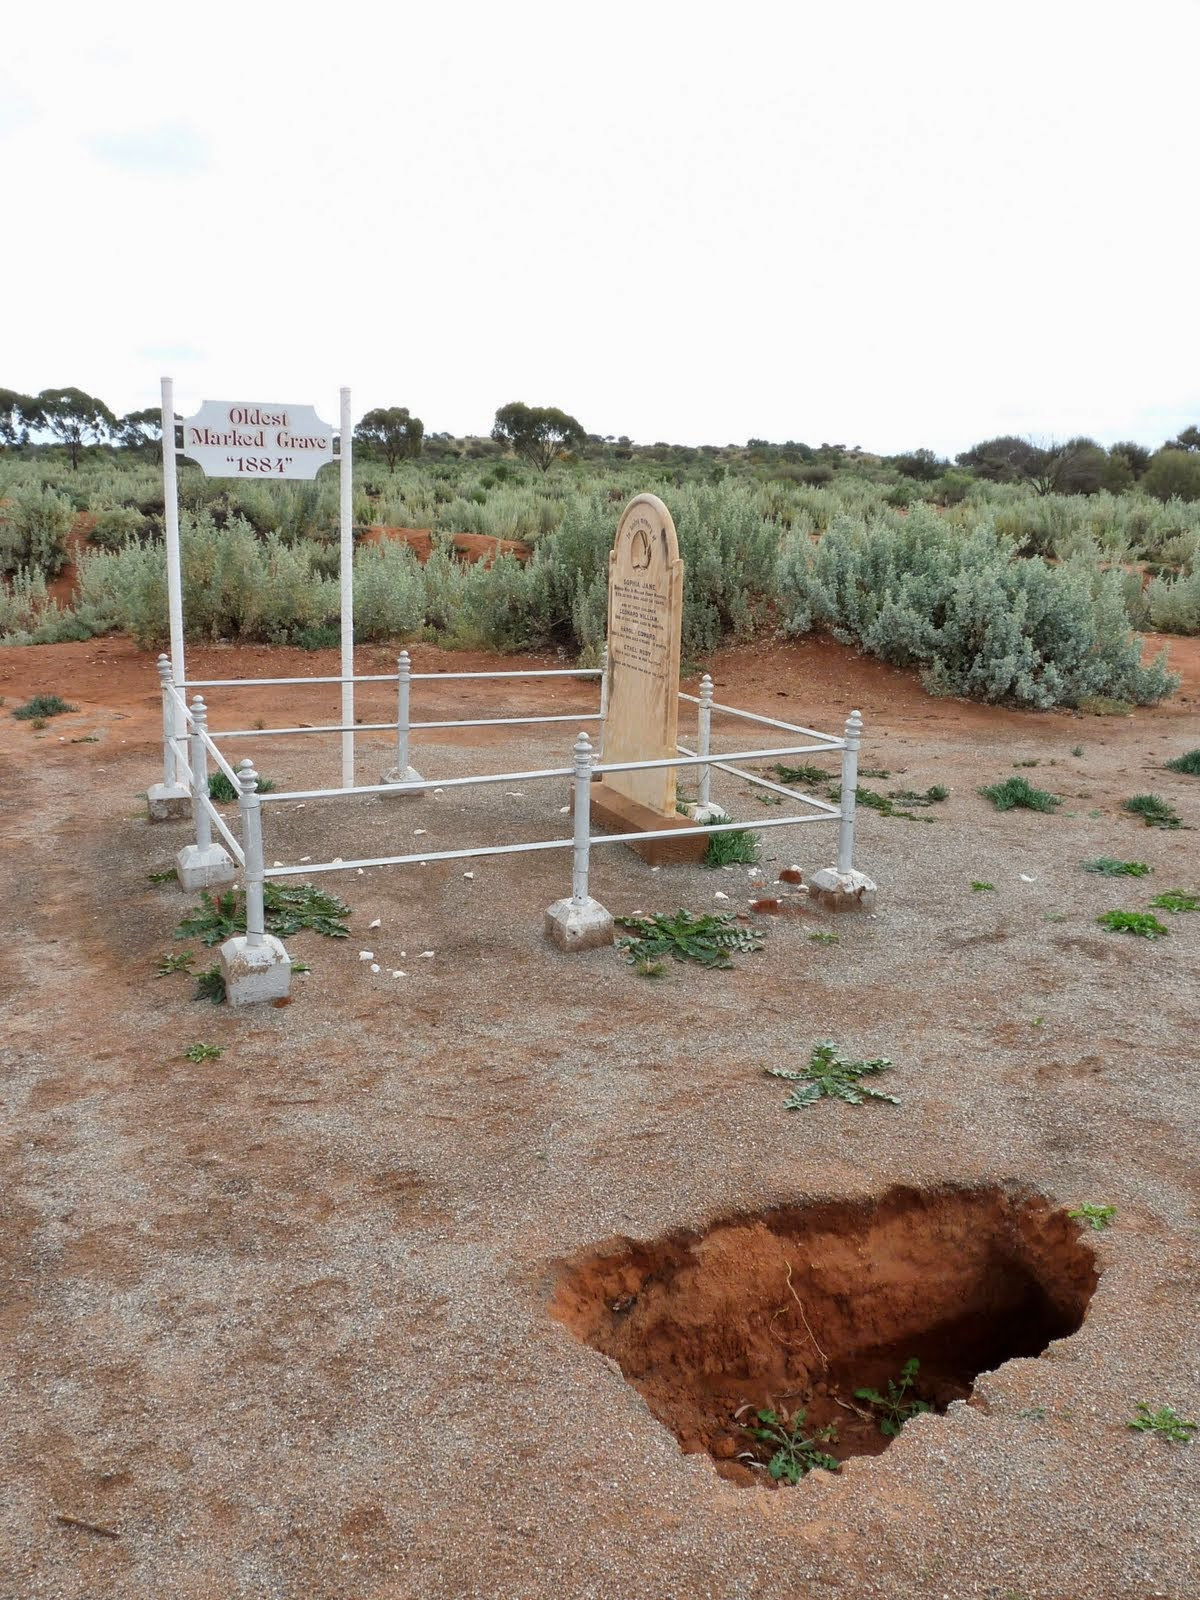 sunken graves, sinkhole under graves, sinkhole grave, grave sinkhole, sunken graves mexico, The sould of this body has escaped that sunken grave in Missouri, Cave-ins under sinkhole in Gravesend. A portal to another world?, This Dunedin cemetery looks creepy with its sunken graves, Look an underground portal to the zombie world!